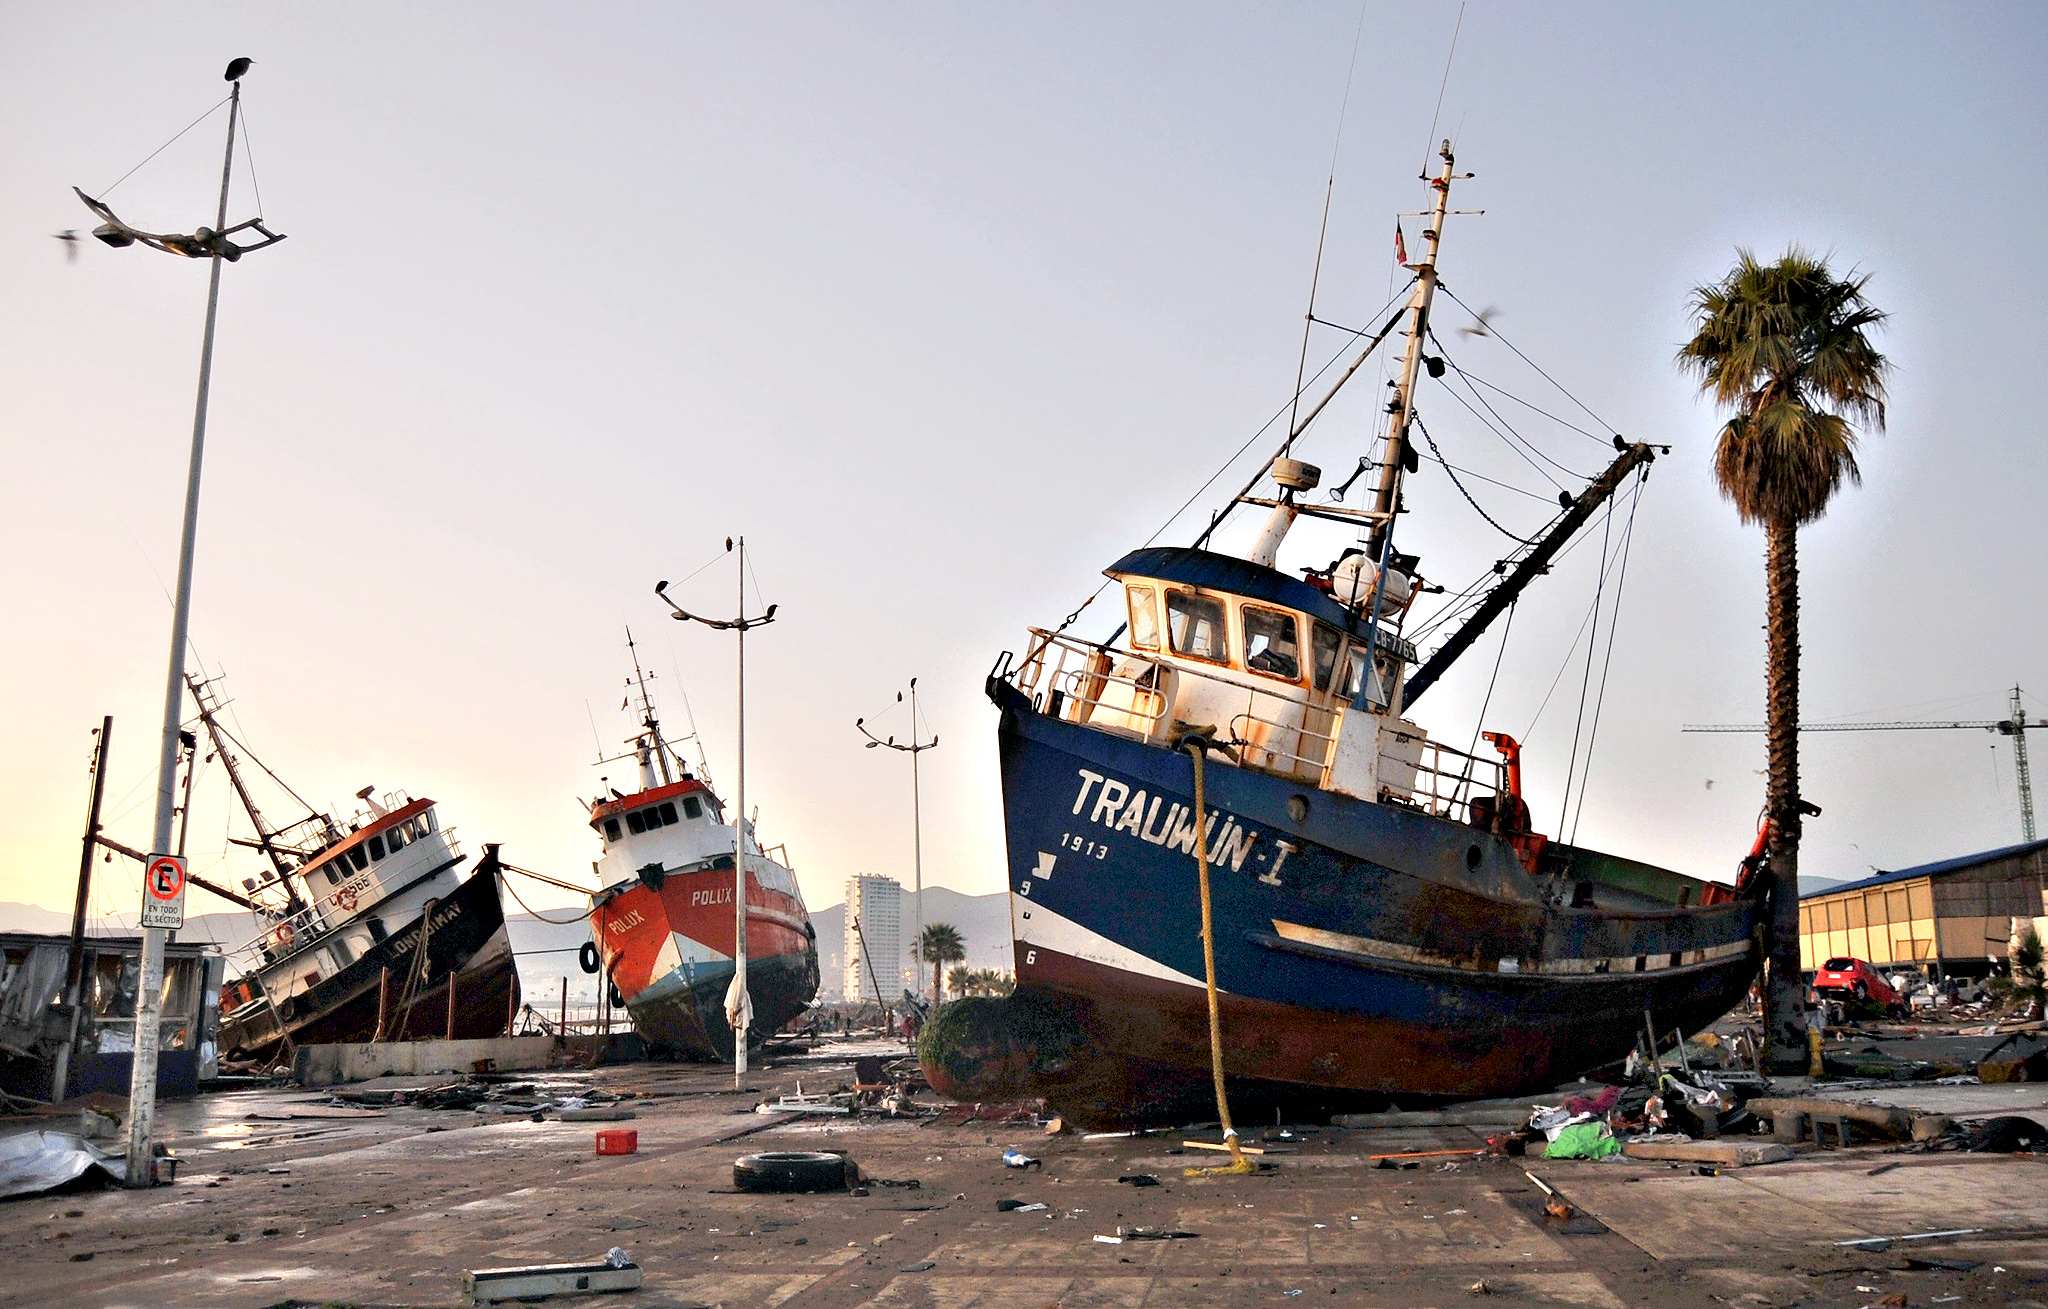 Ships are seen in the street after an earthquake hit areas of central Chile, in Coquimbo city, north of Santiago, Chile, September 17, 2015. Strong aftershocks rippled through Chile on Thursday after a magnitude 8.3 earthquake that killed at least eight people and slammed powerful waves into coastal towns, forcing more than a million people from their homes